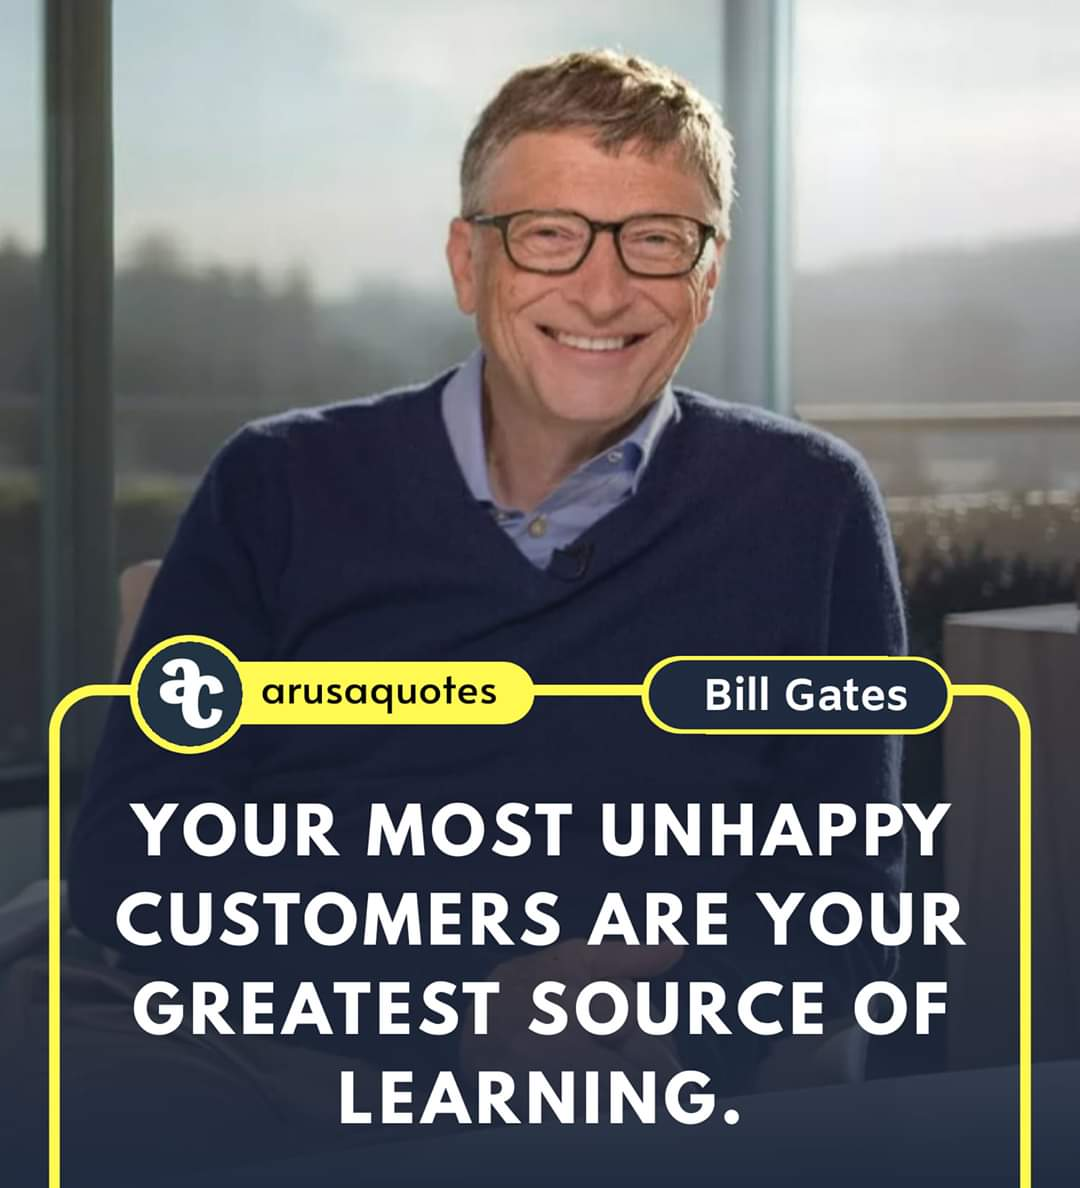 Bill Gates about unhappy customers